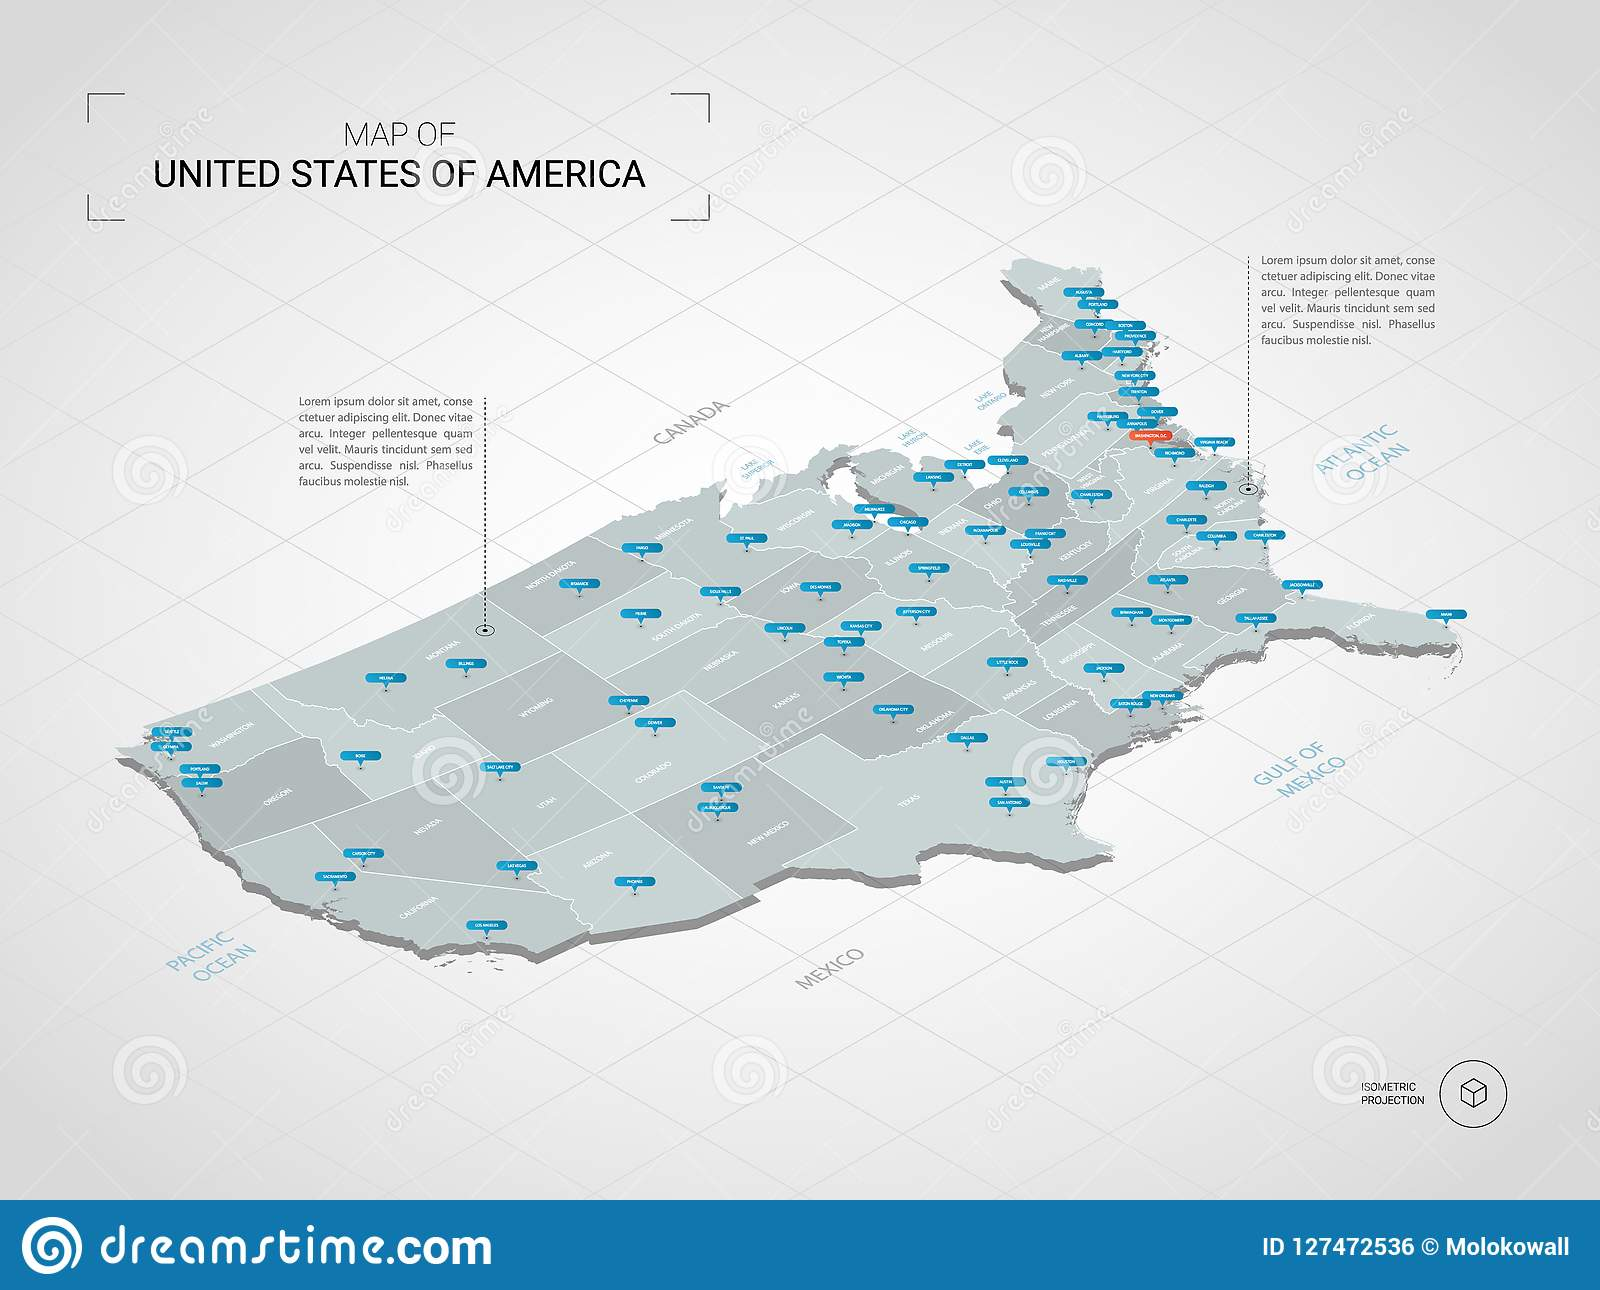 Isometric United States Of America Map With City Names And Admin